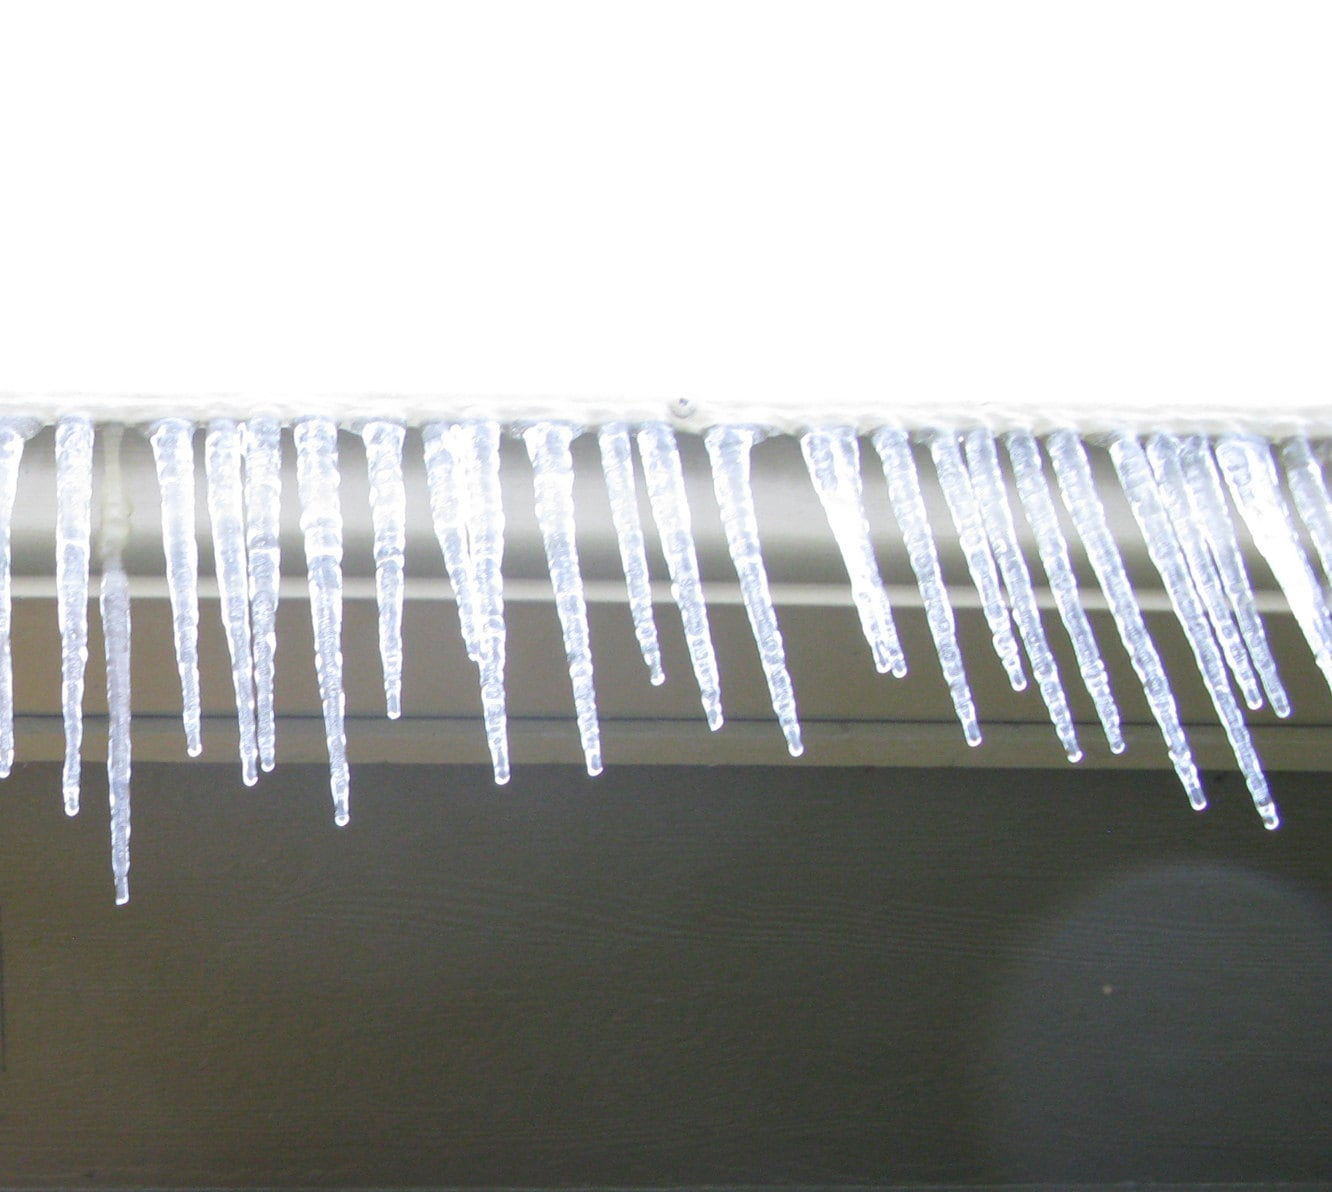 More icicles (o.k., same as the main pic)